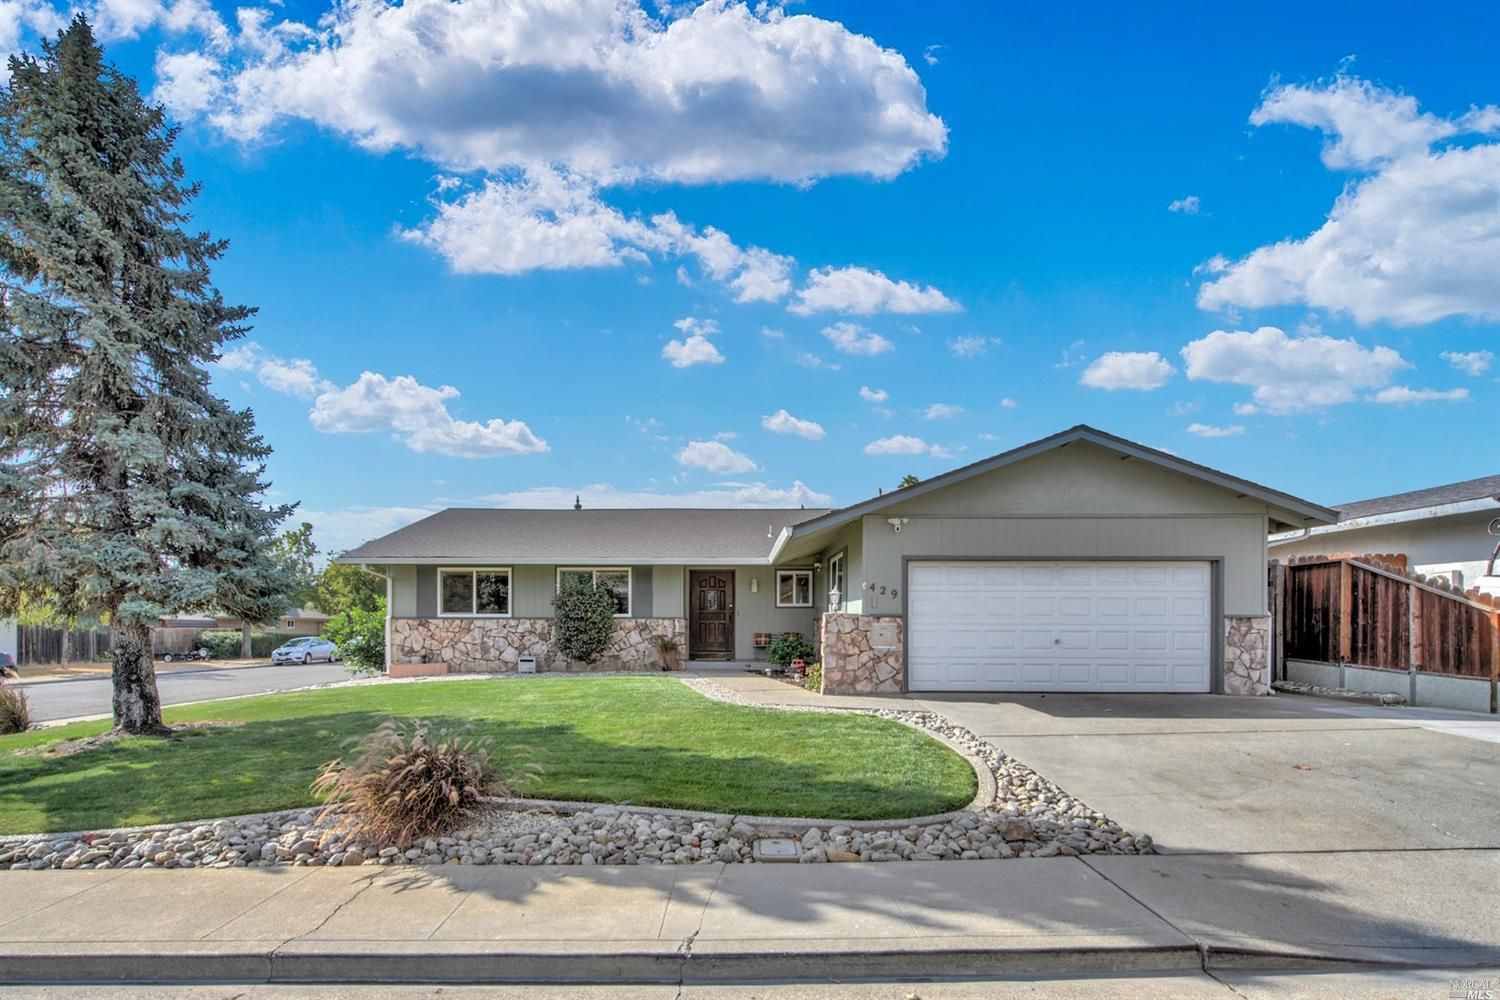 This spacious single story home located in the Travis Acres subdivision is beautiful inside and out!